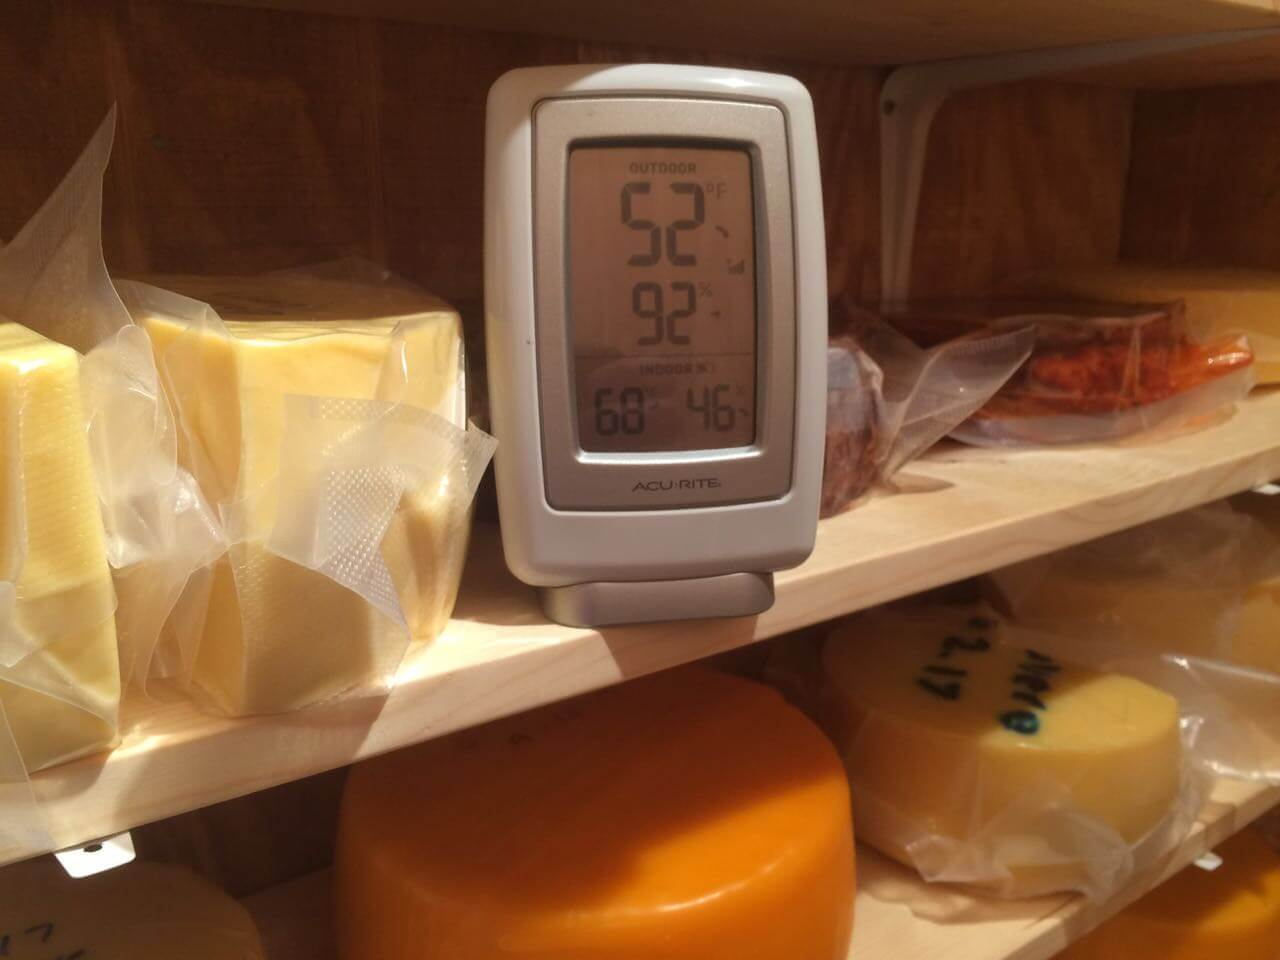 Humidity and temperature perfect in the new cheese cave.